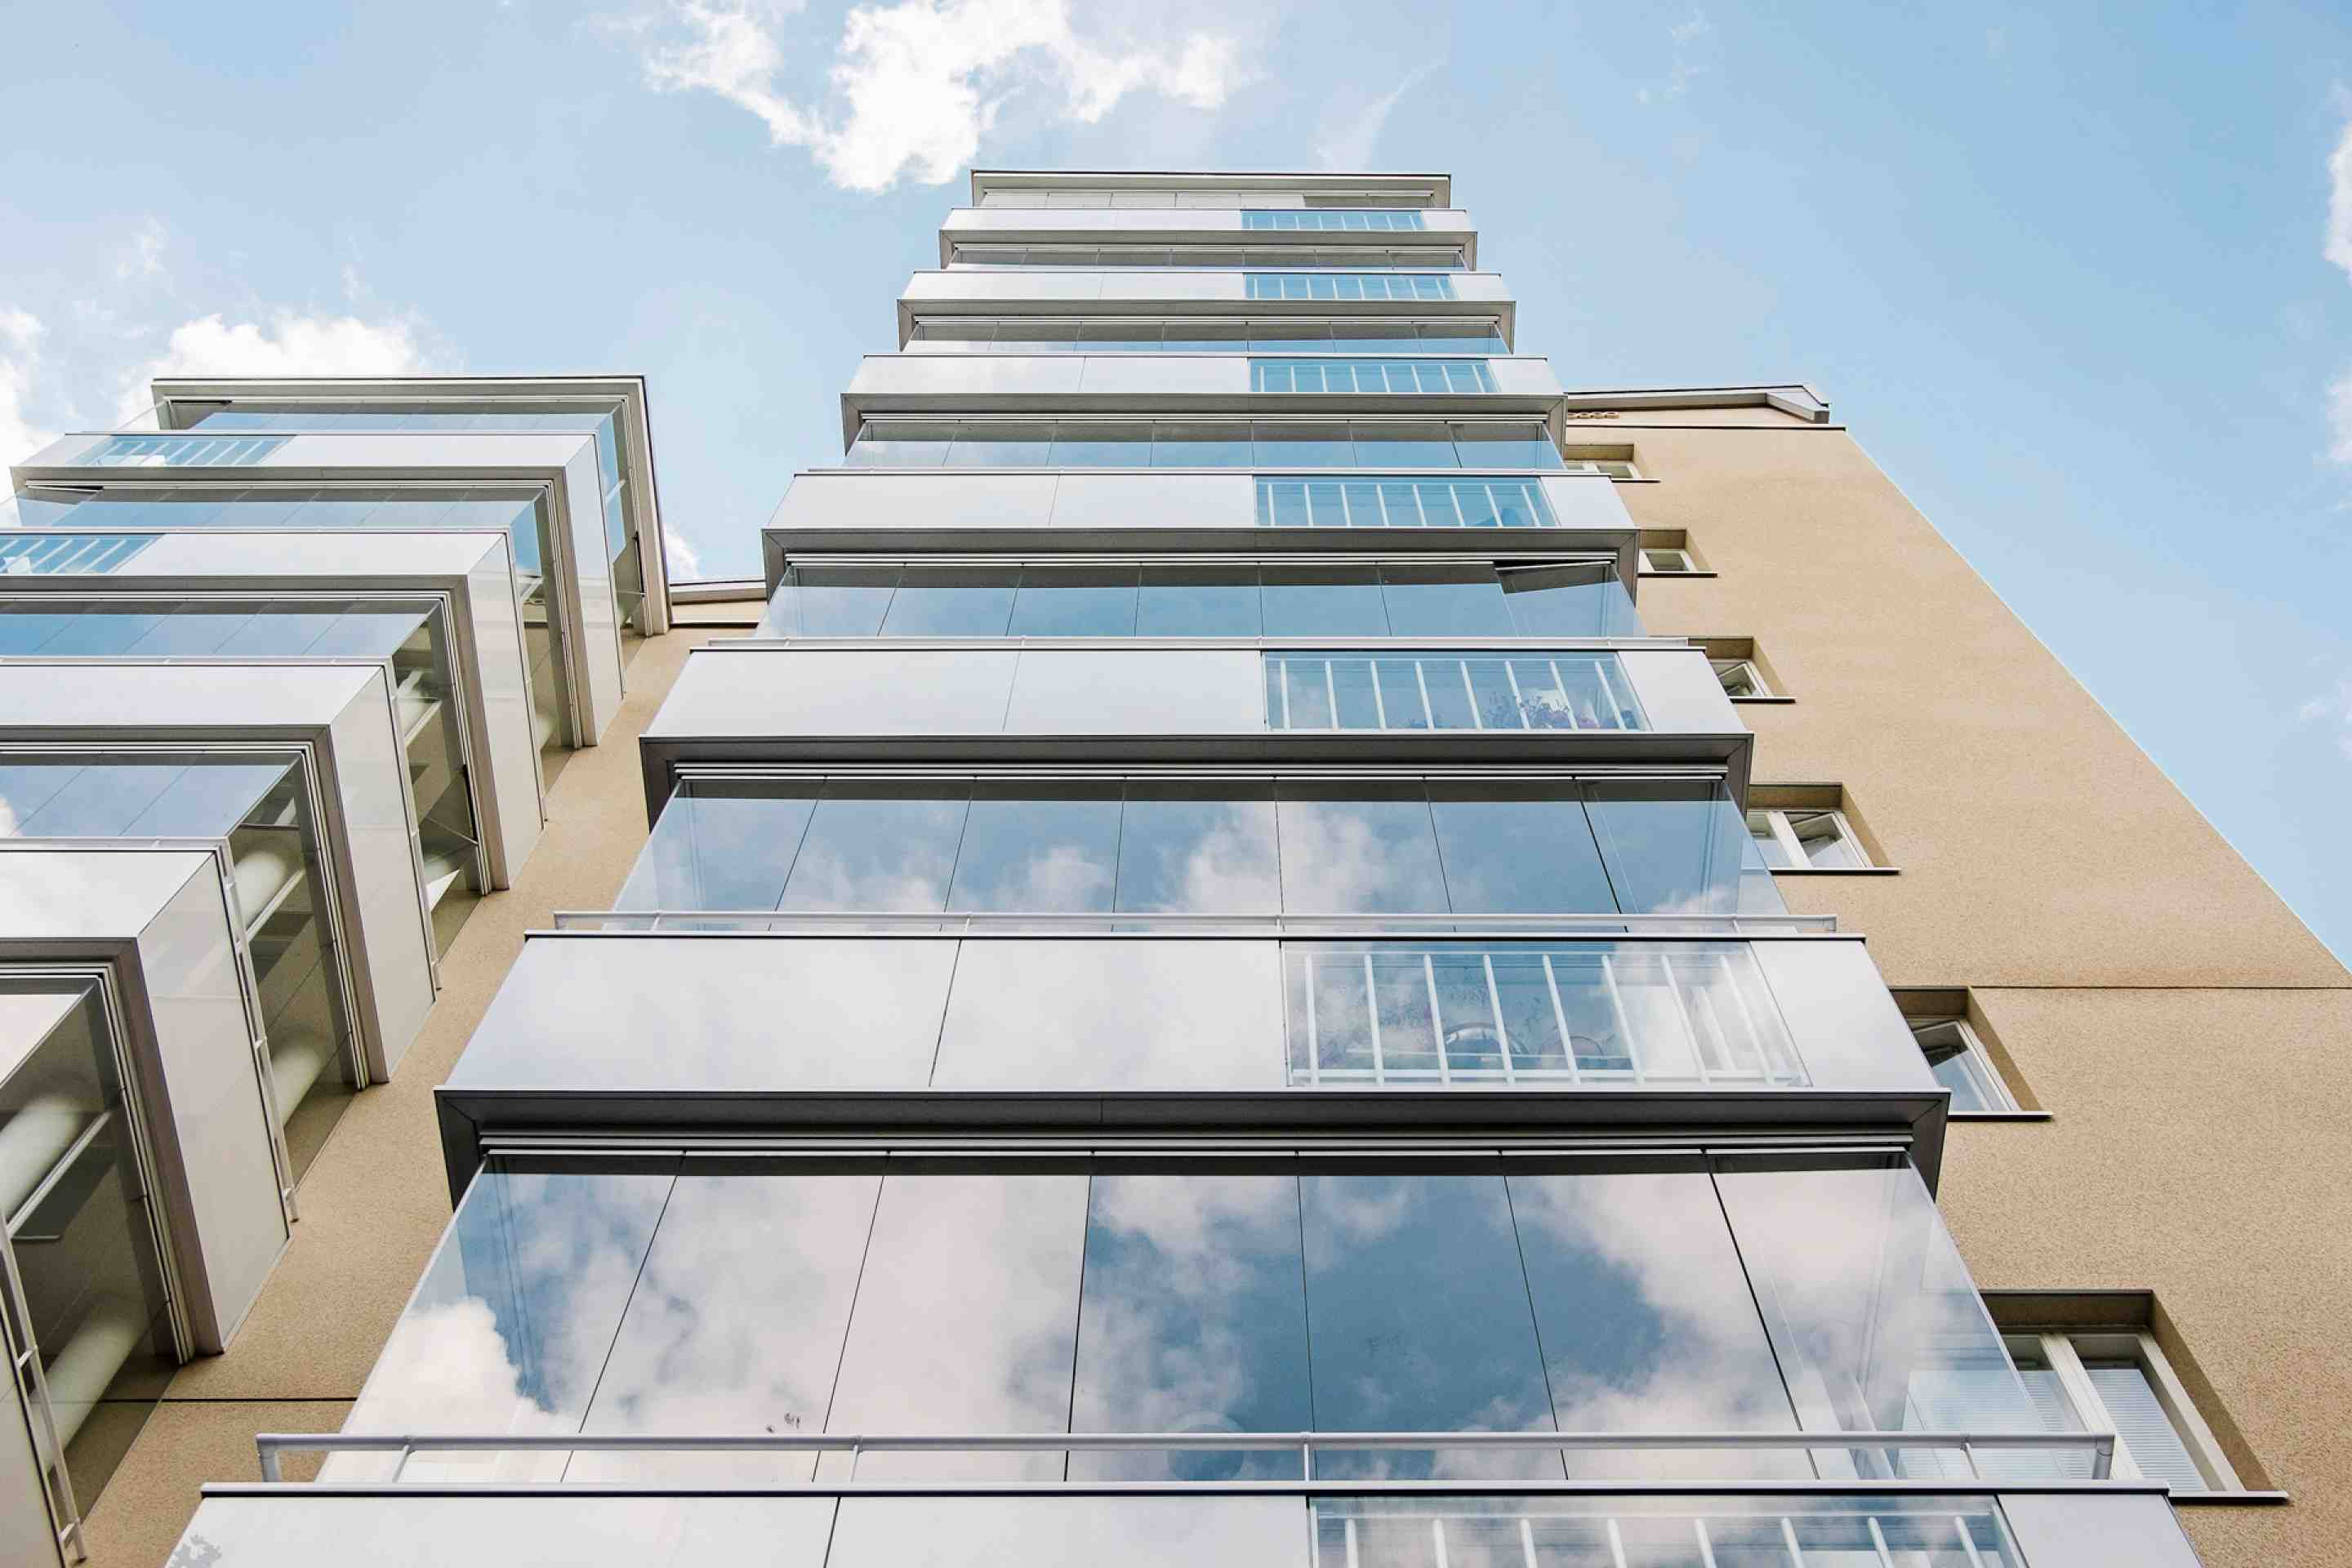 renovation, building renovation, building facades, building facade, building facade Vancouver, balcony facade, balcony facade Vancouver, balcony facade system, balcony facade system Vancouver, balcony windows, balcony windows Vancouver, balcony glass, balcony glass Vancouver, retractable glass, railings